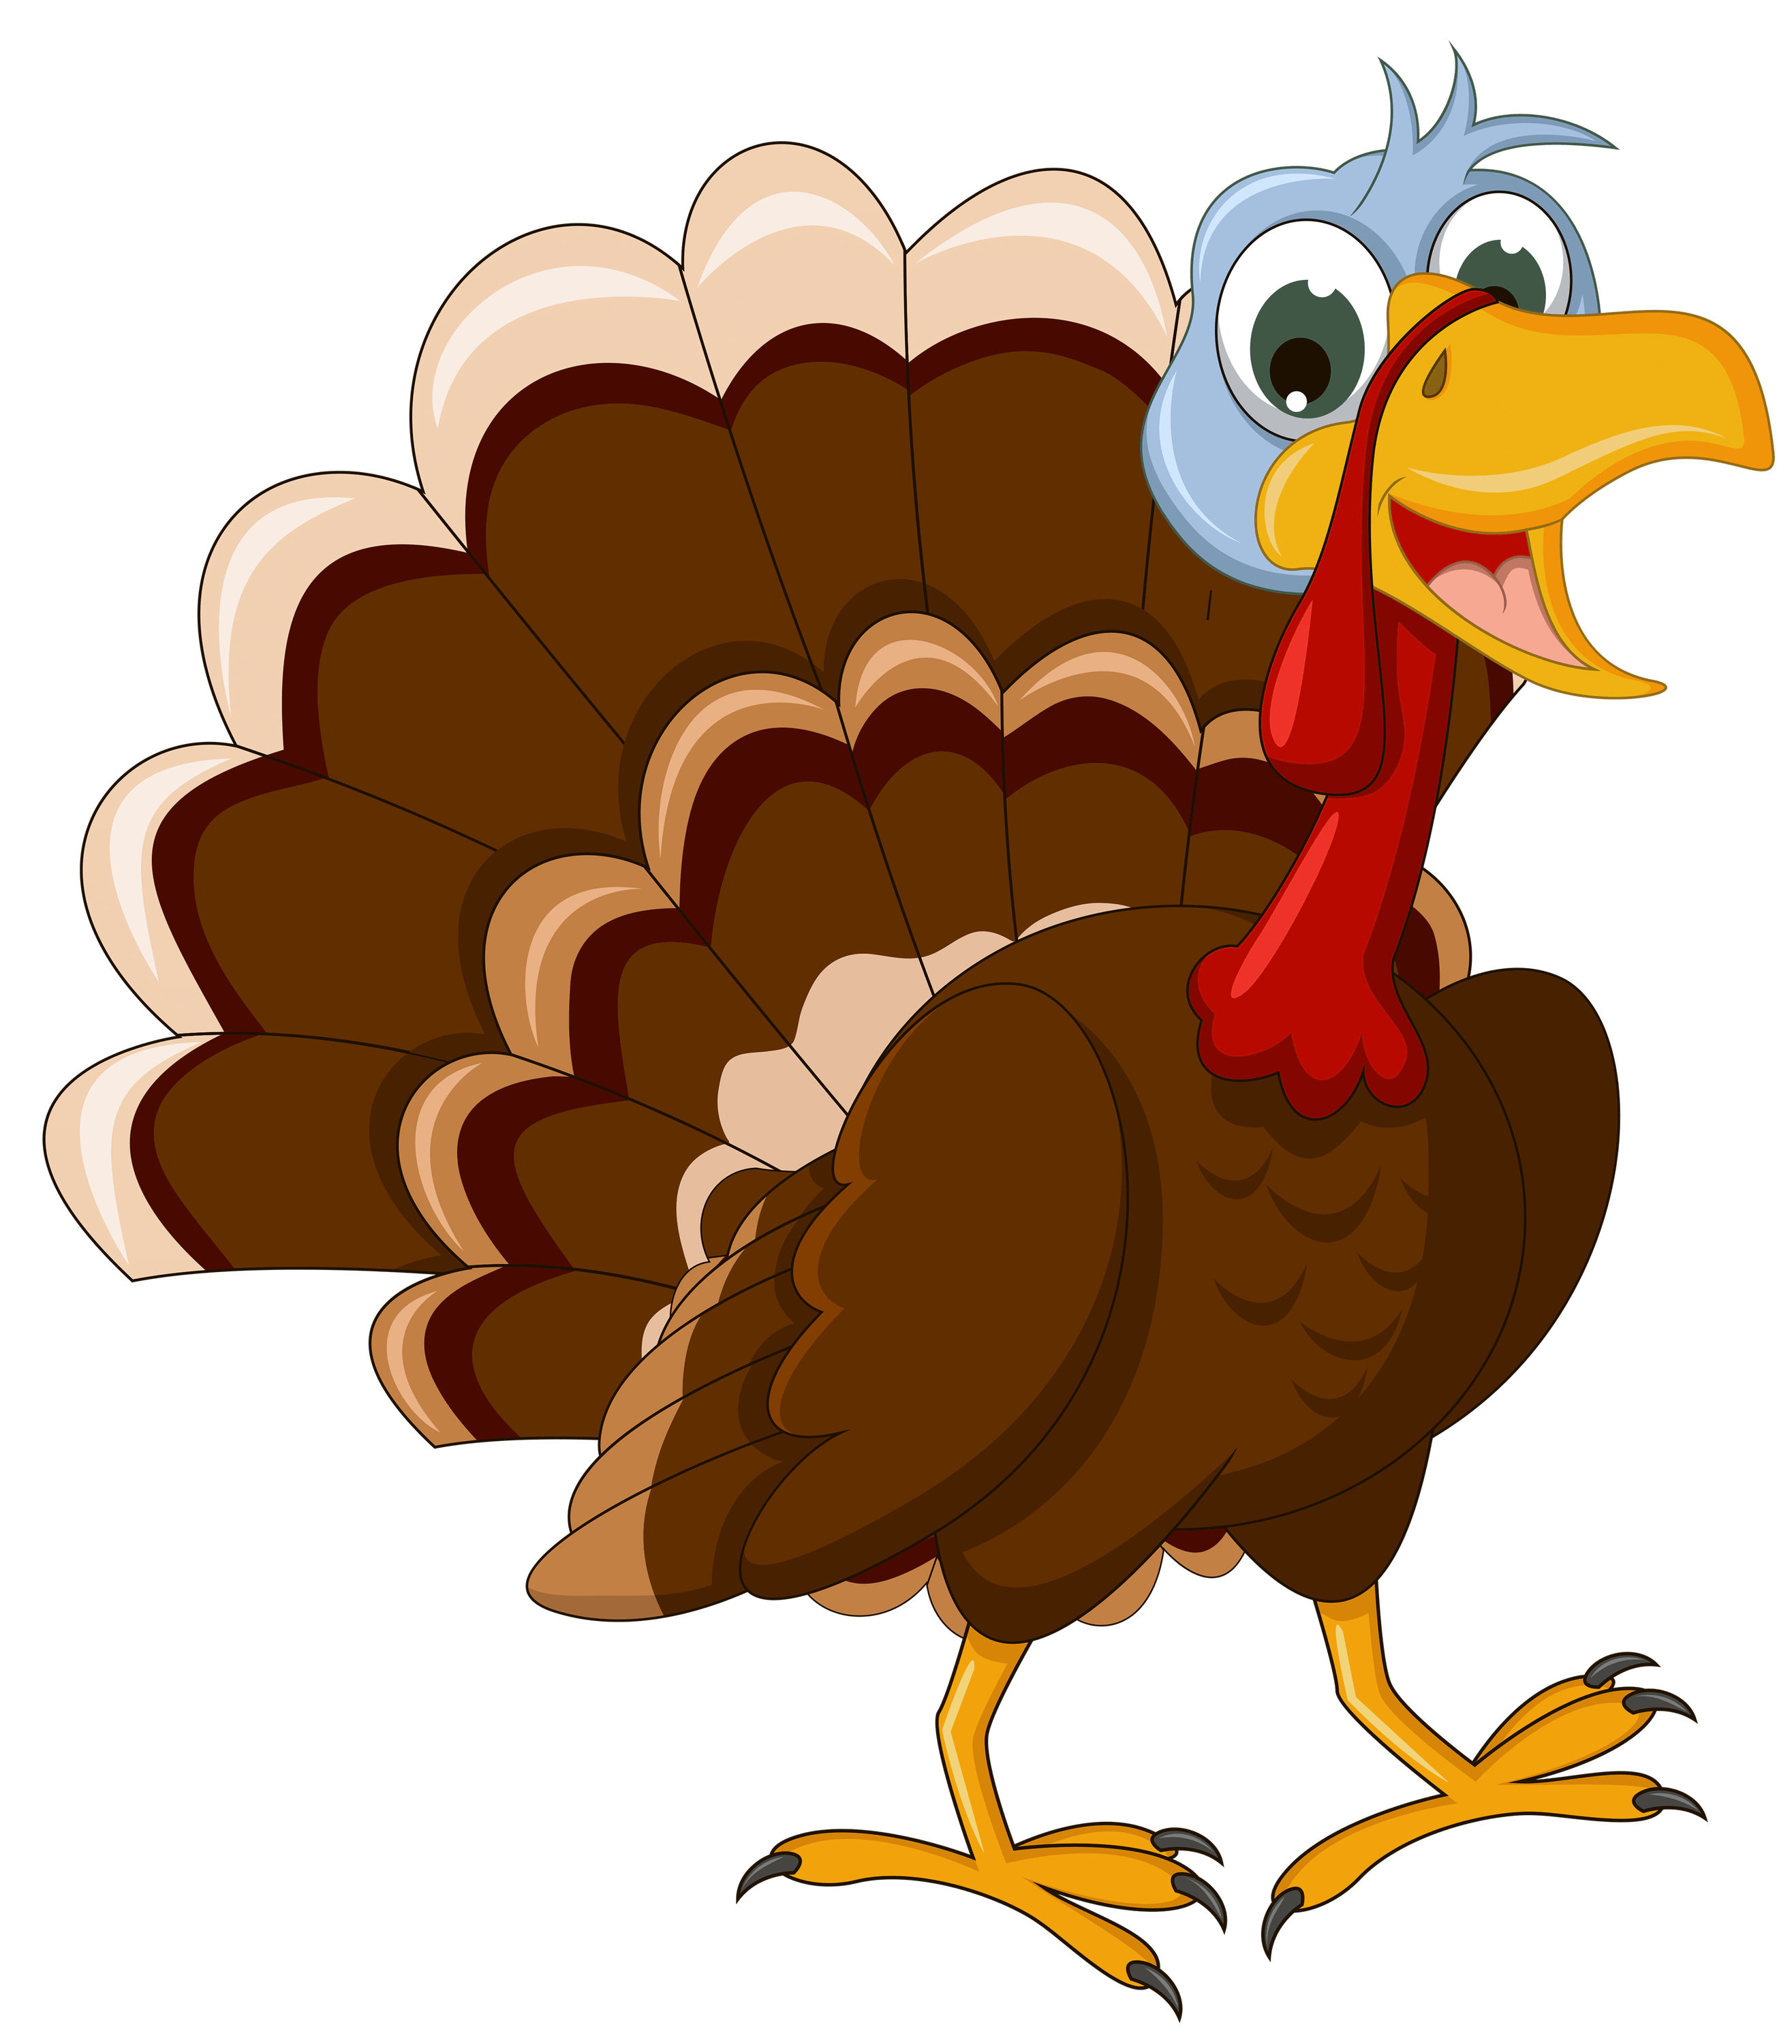 Clipart turkey roasted turkey. Thanksgiving transparent png stickpng